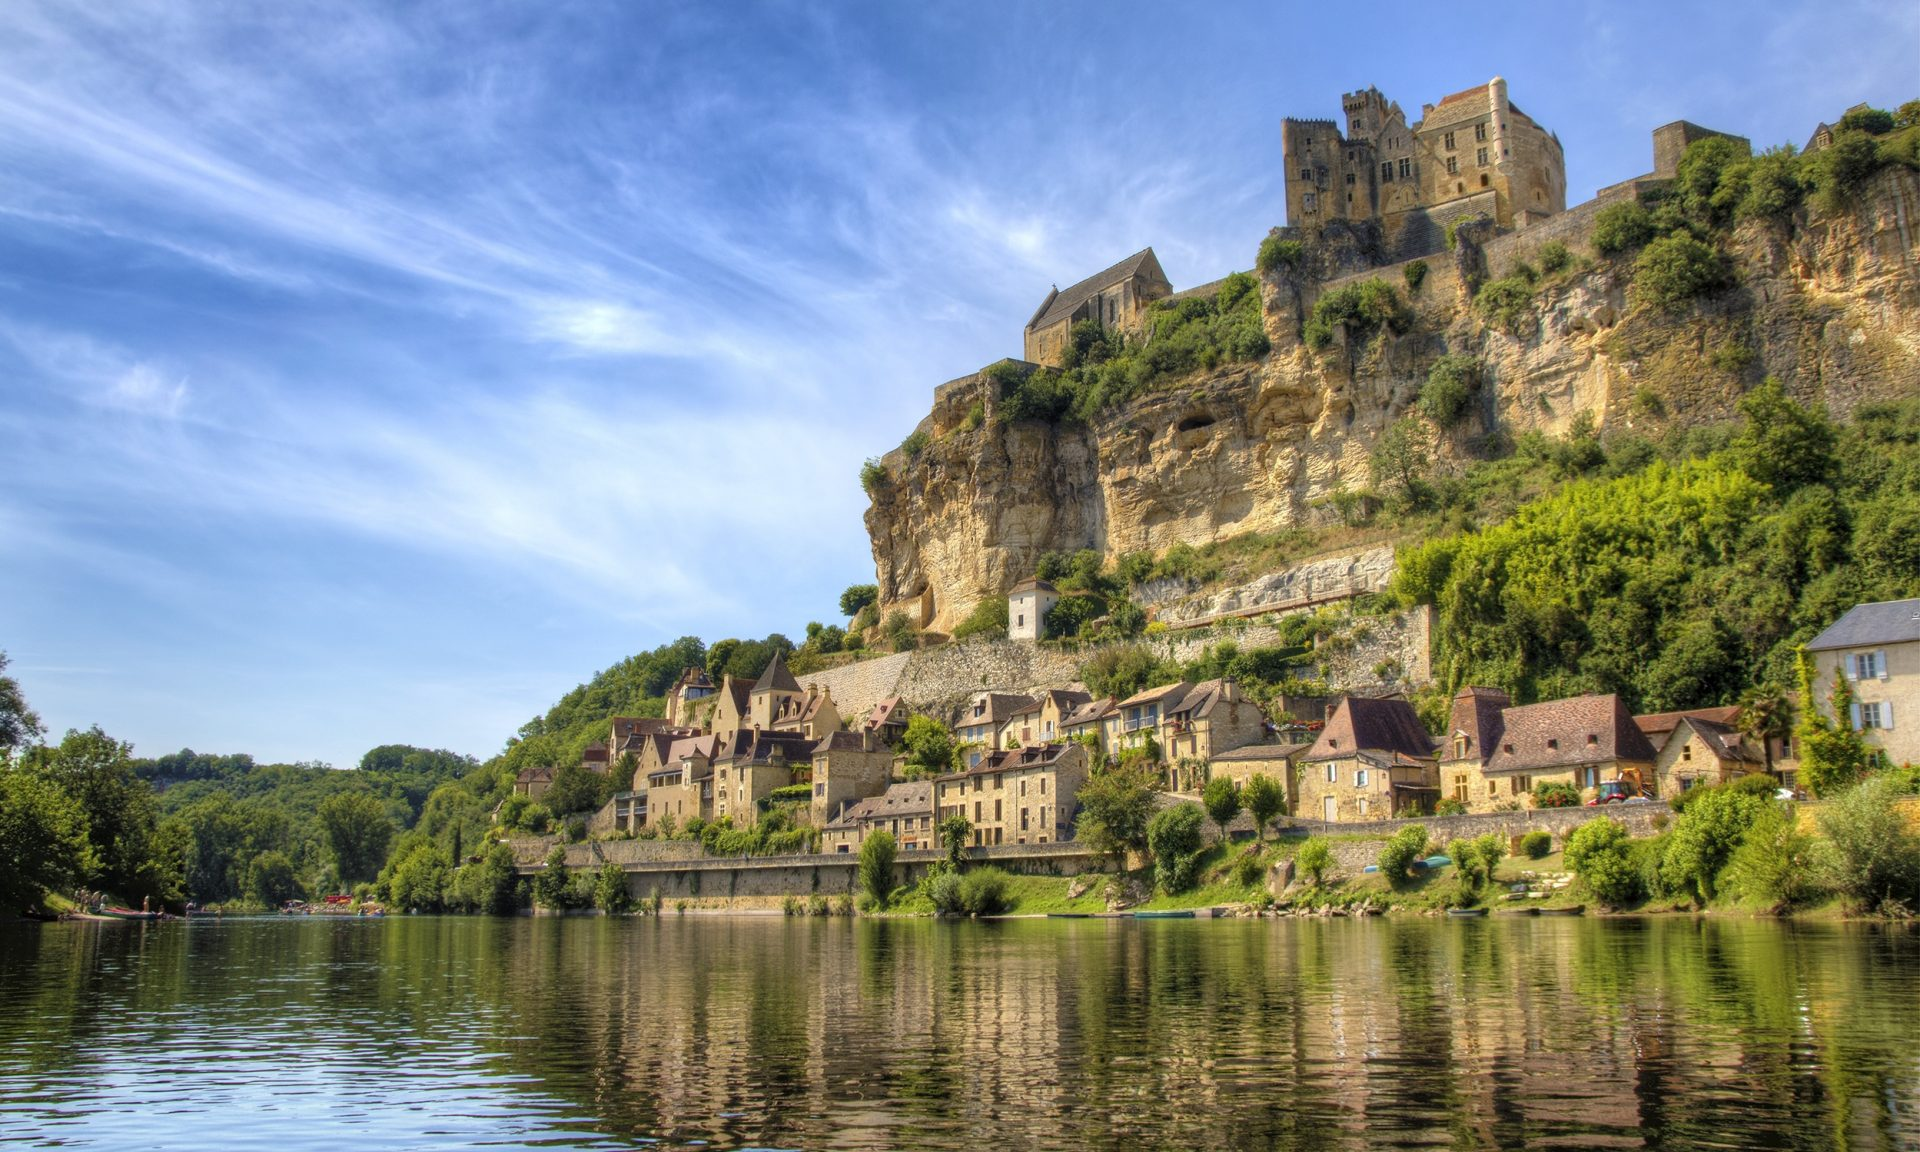 There are some stunning villages in Dordogne.